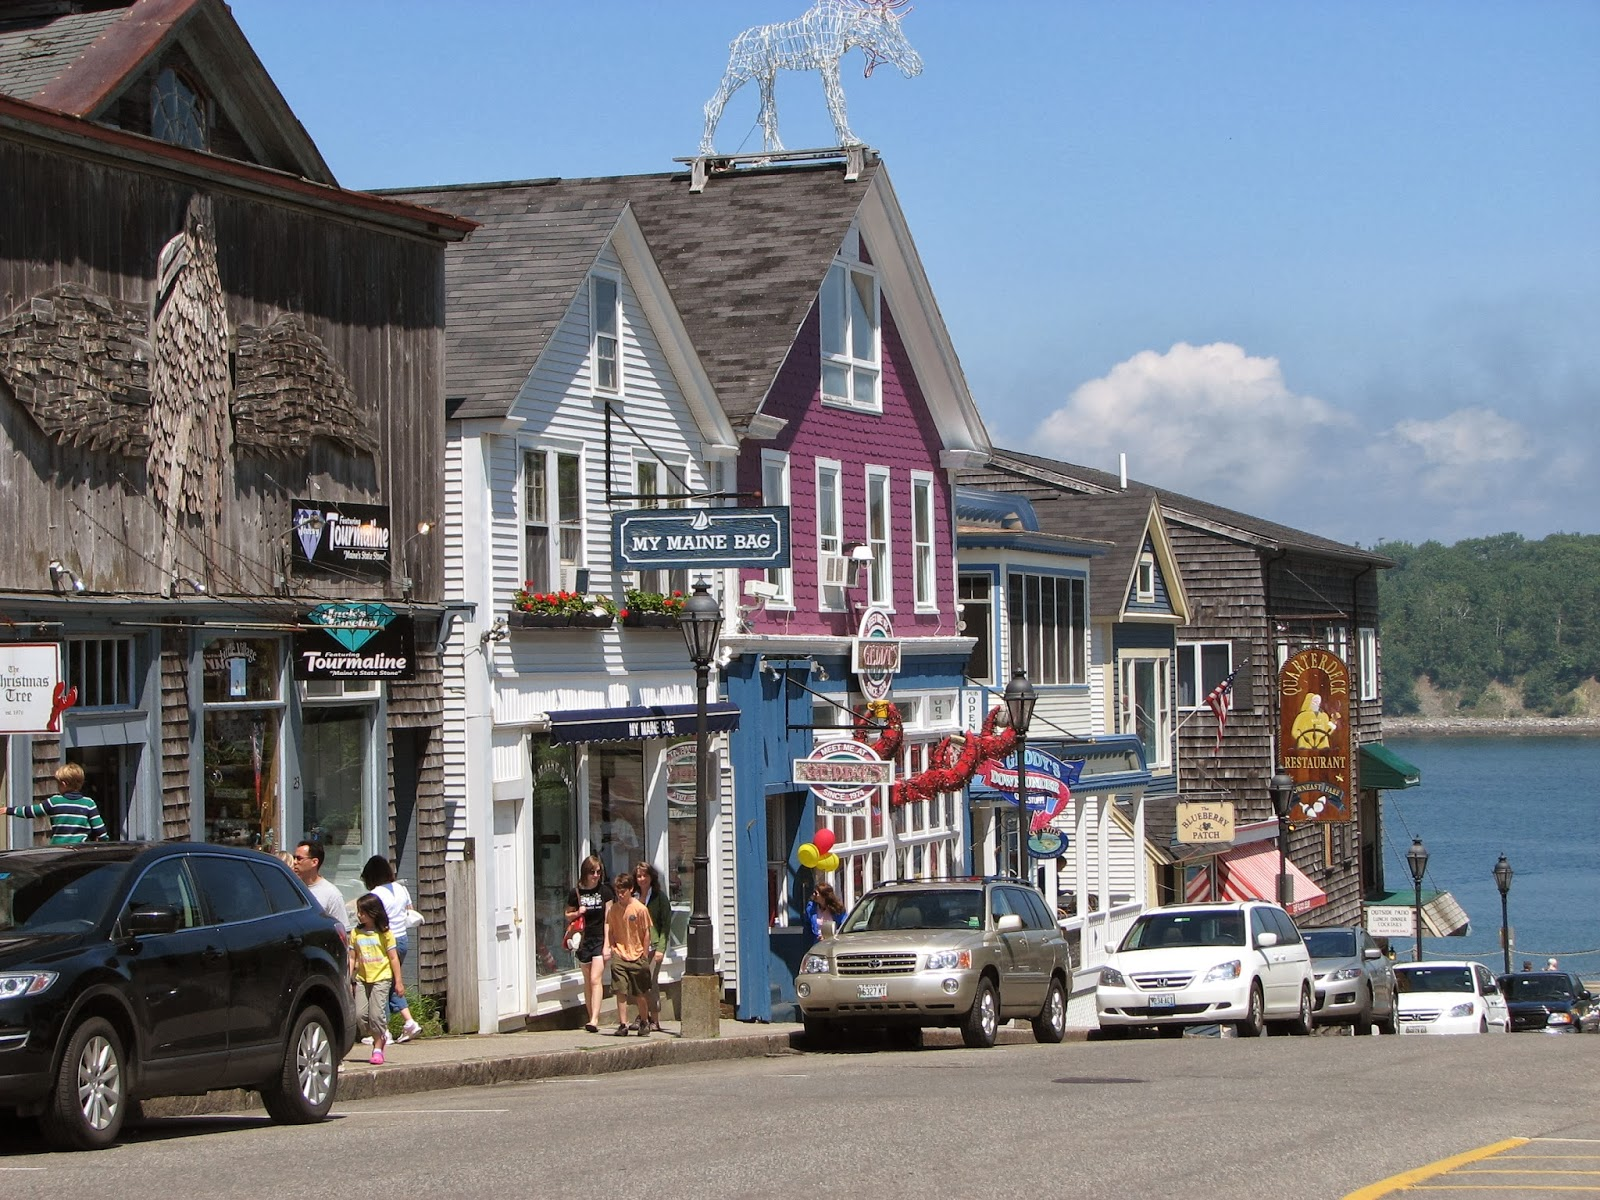 free online personals in west boothbay harbor Boothbay harbor is a town in lincoln county, maine, united states the  population was 2,165 at the 2010 census during summer months, the entire  boothbay.